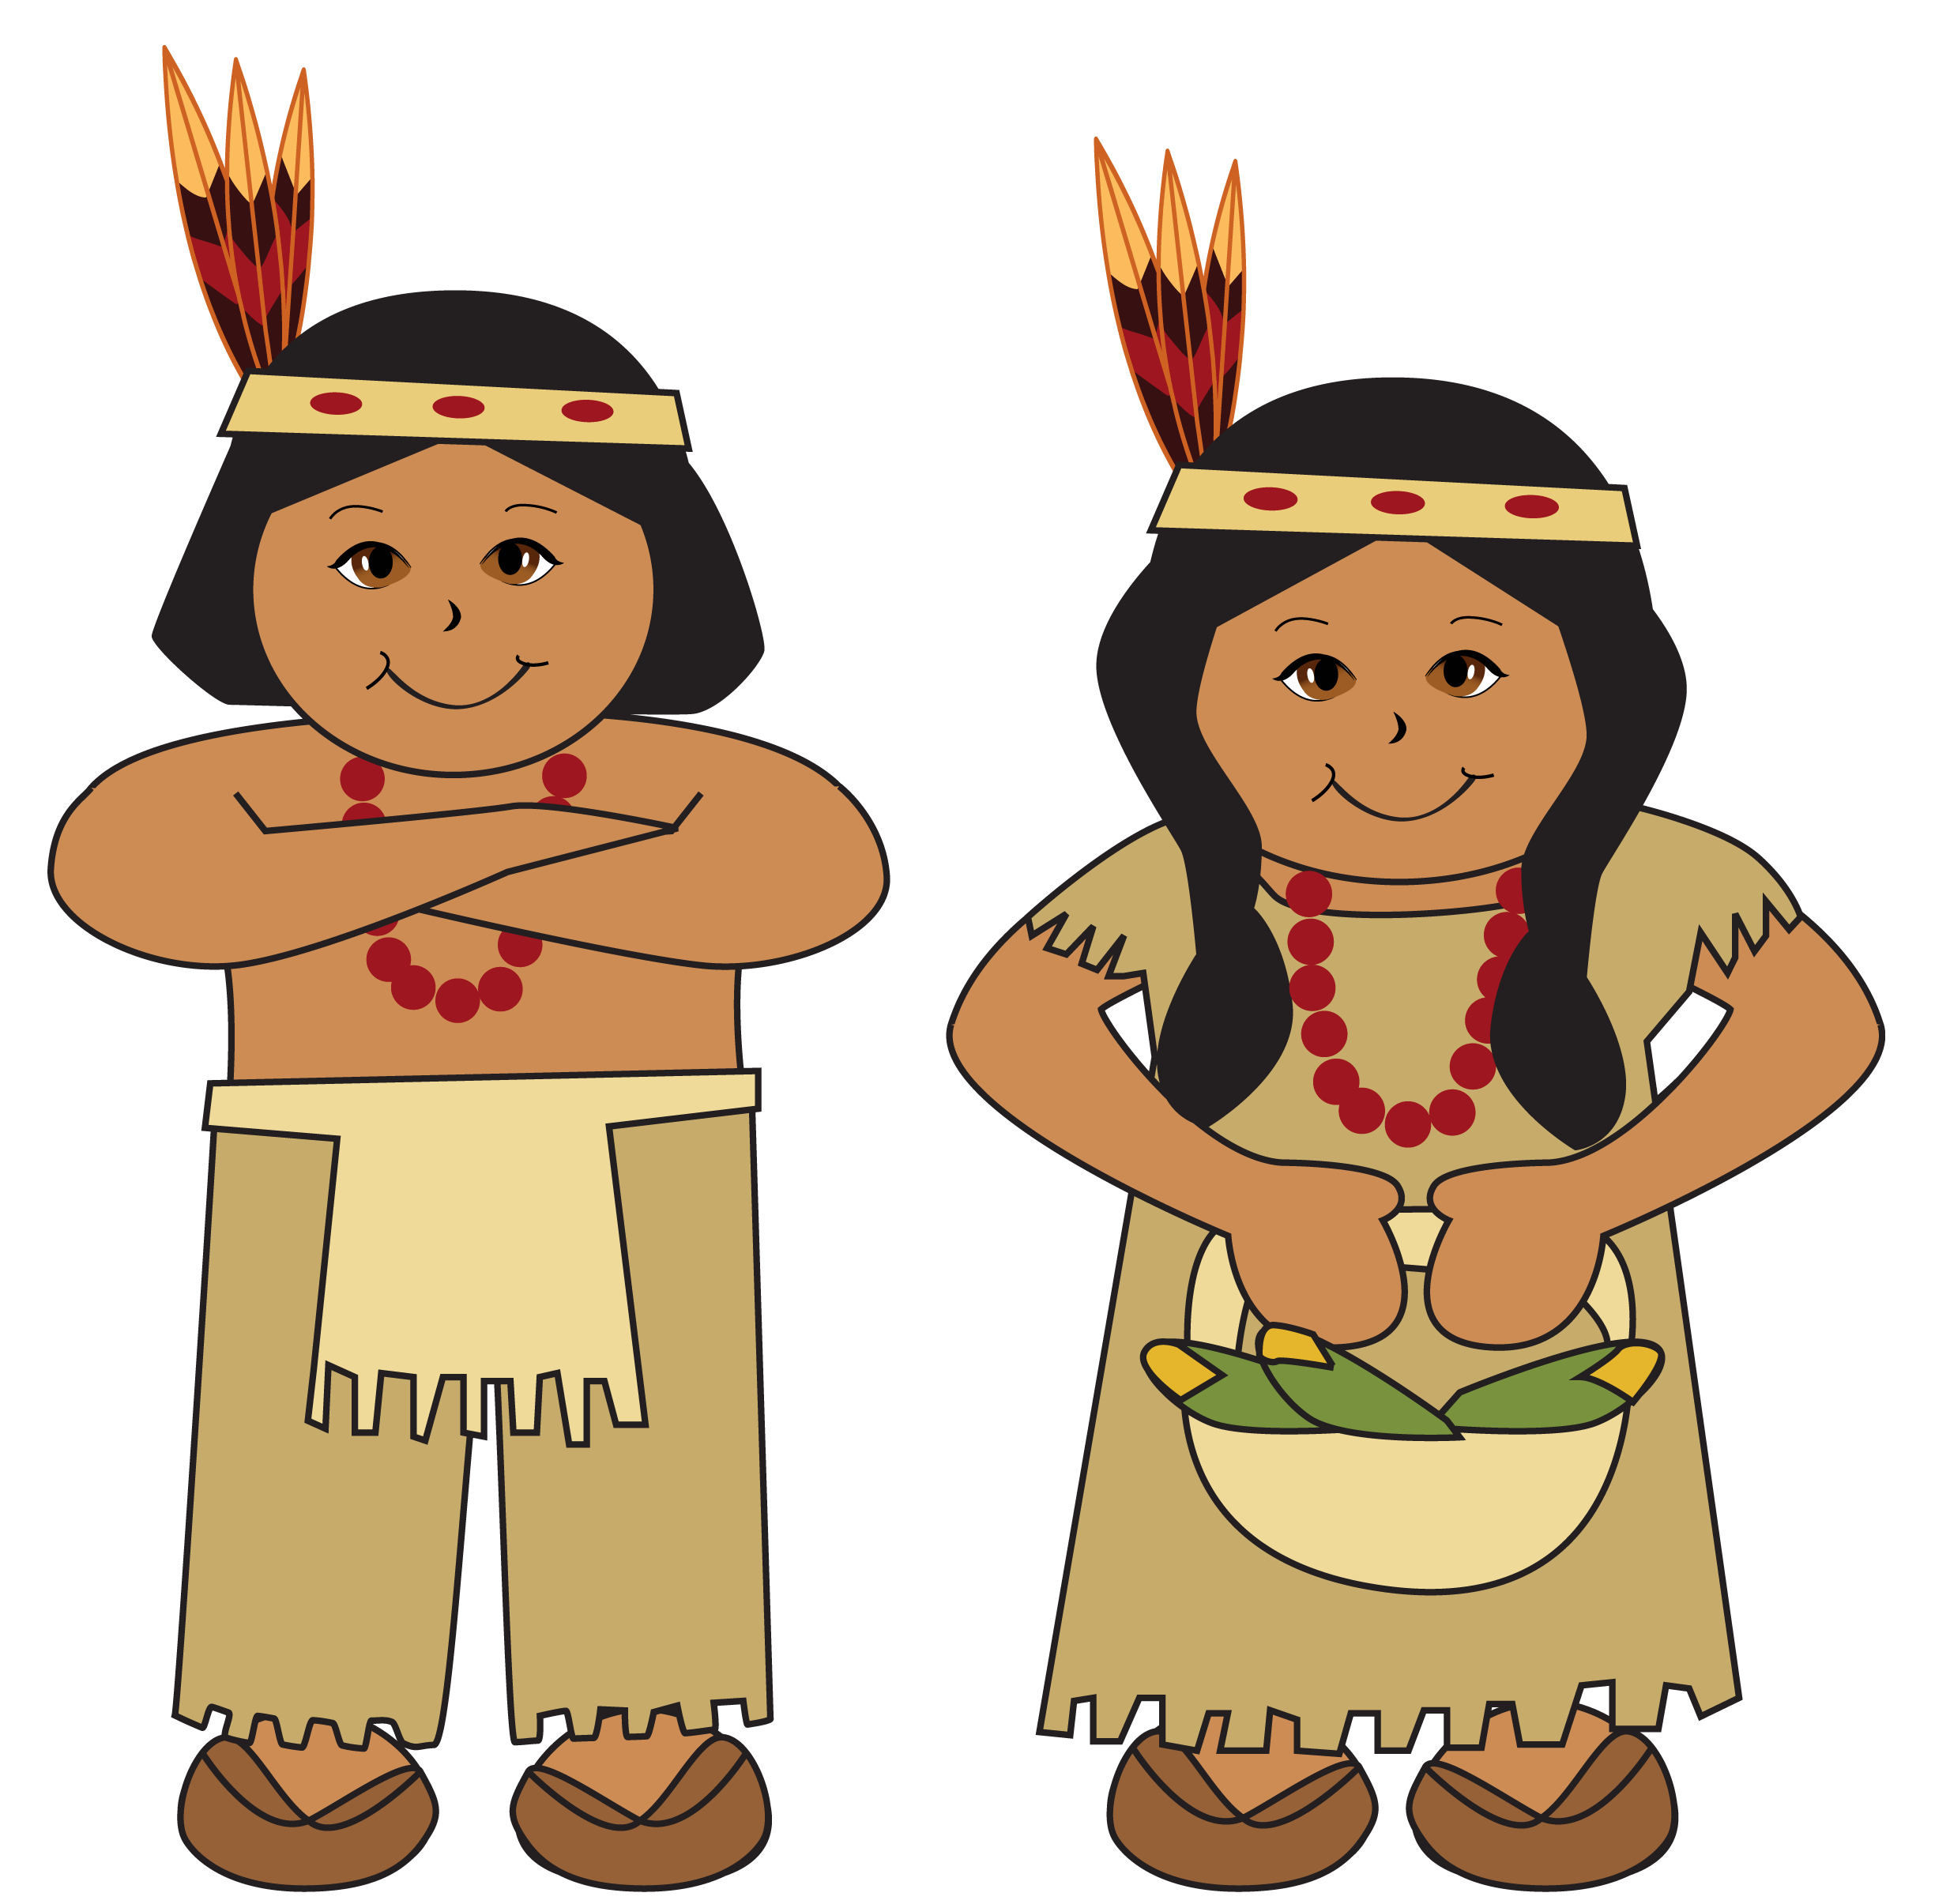 Christian thanksgiving clipart clip freeuse library Native americans clipart picture | Indian | Pinterest | Native ... clip freeuse library